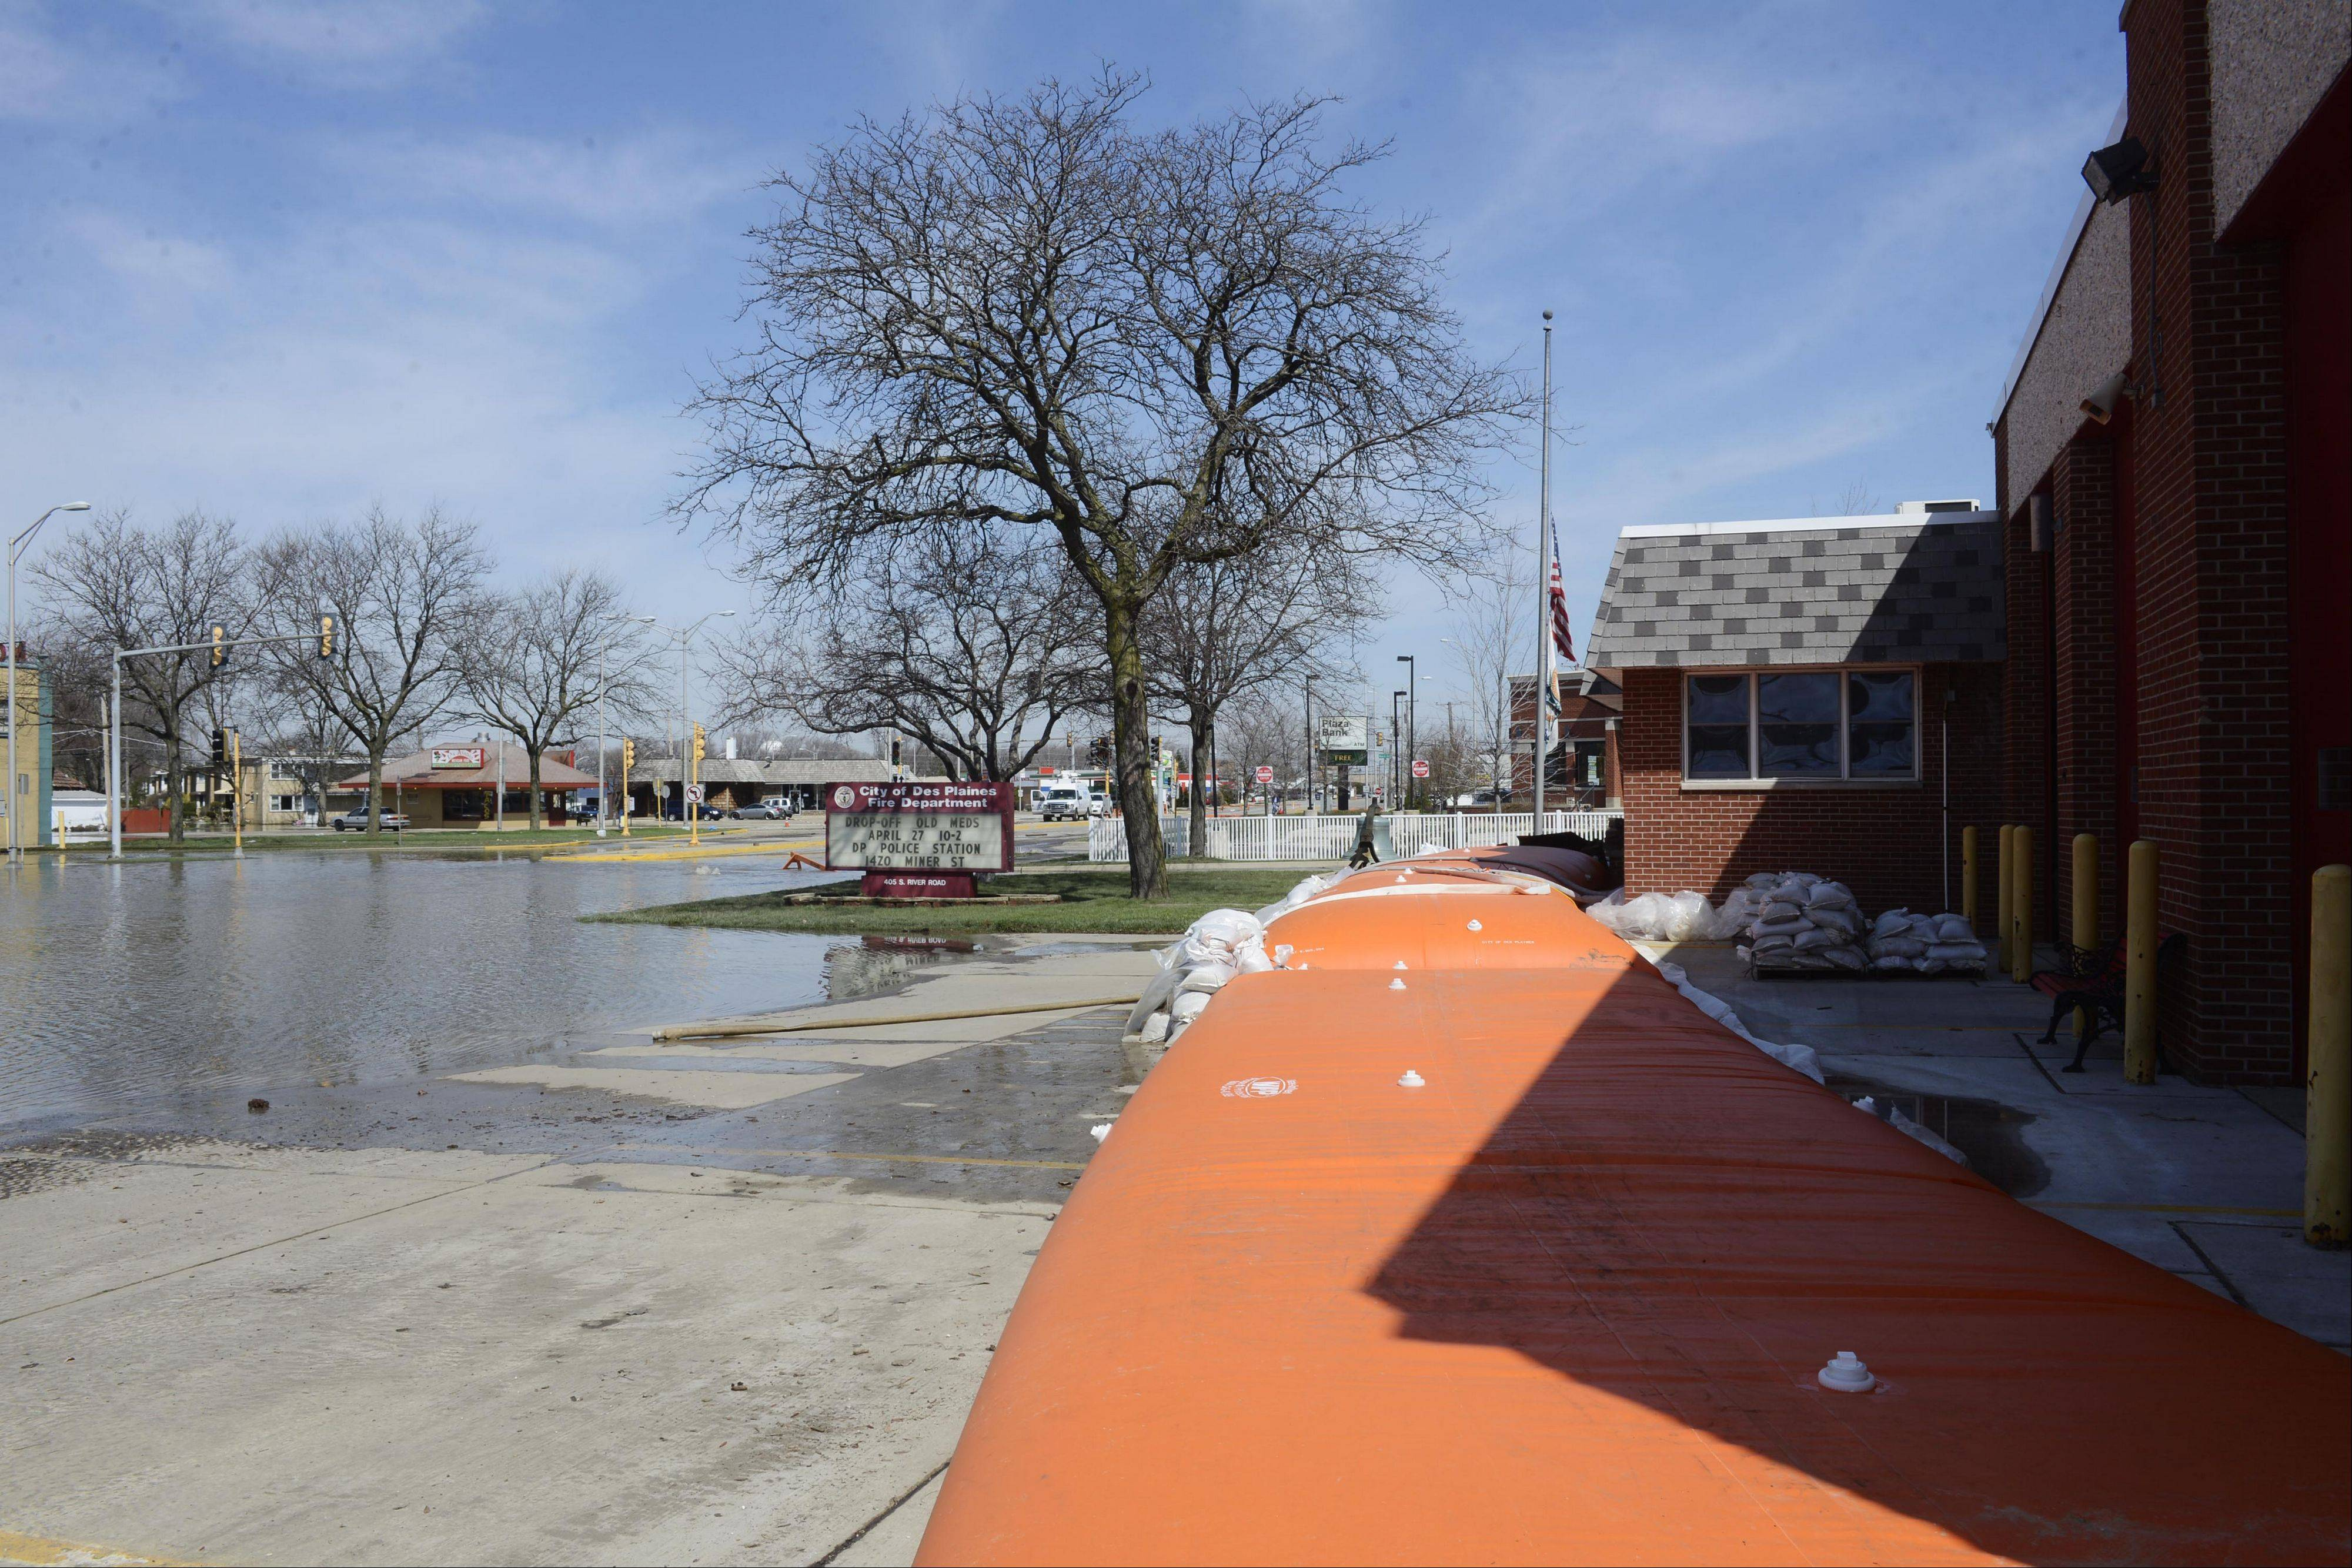 An inflatable device helps protect the front entrance to the Des Plaines fire department's station from floodwater near the intersection of Rand and River roads in Des Plaines Monday.